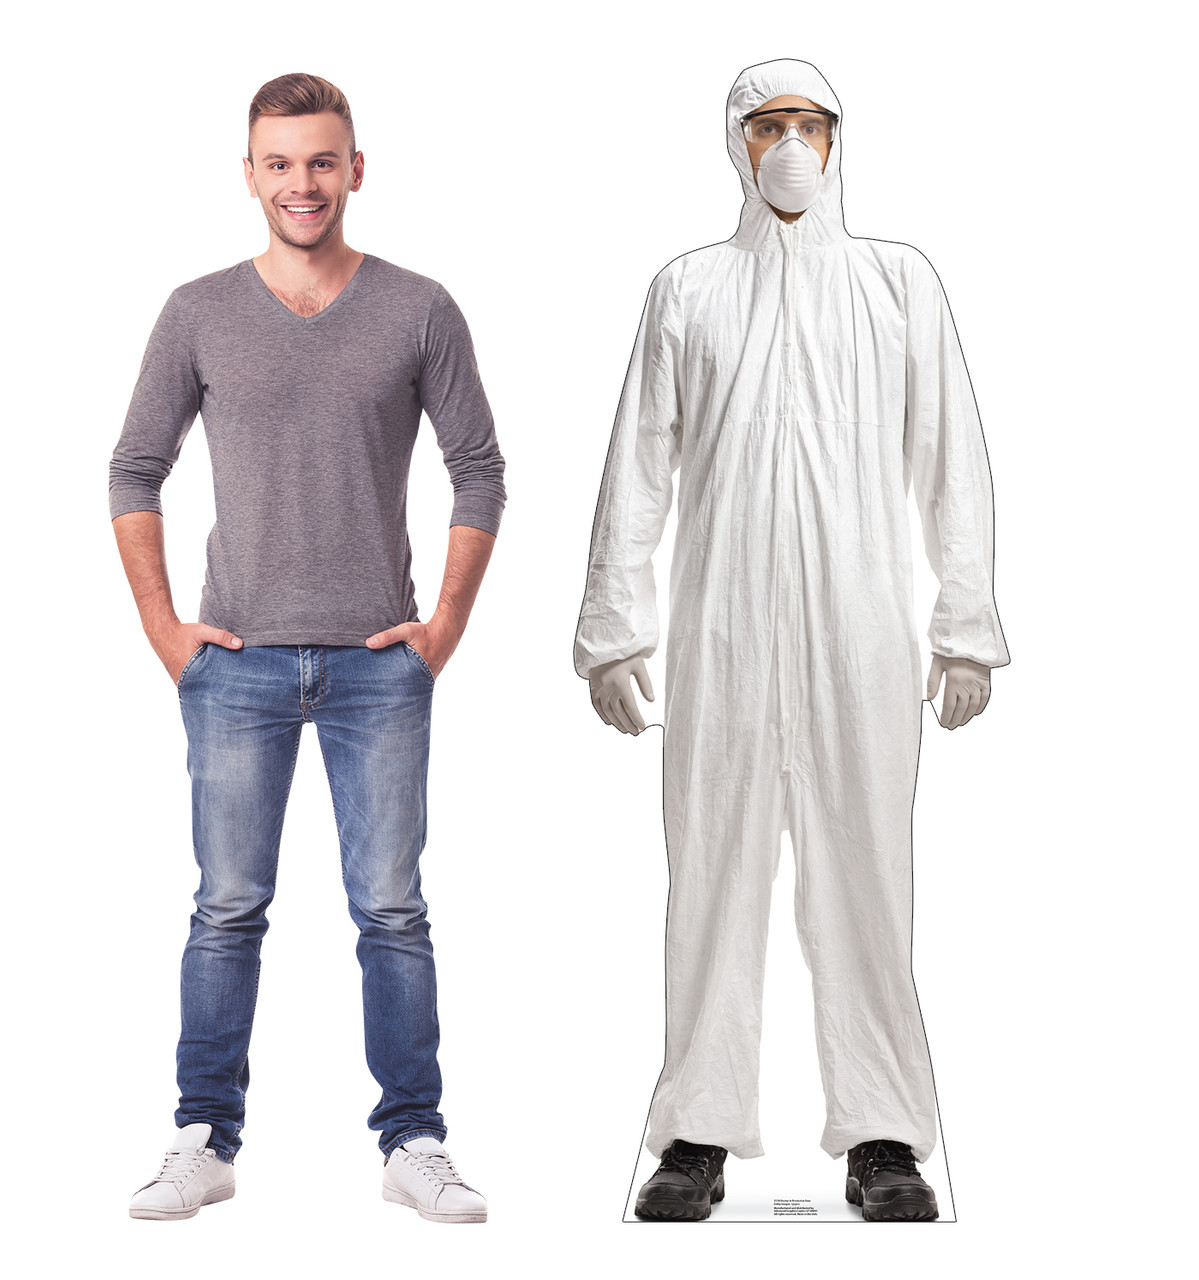 Life-size cardboard standee of a Doctor in Protective Gear with model.